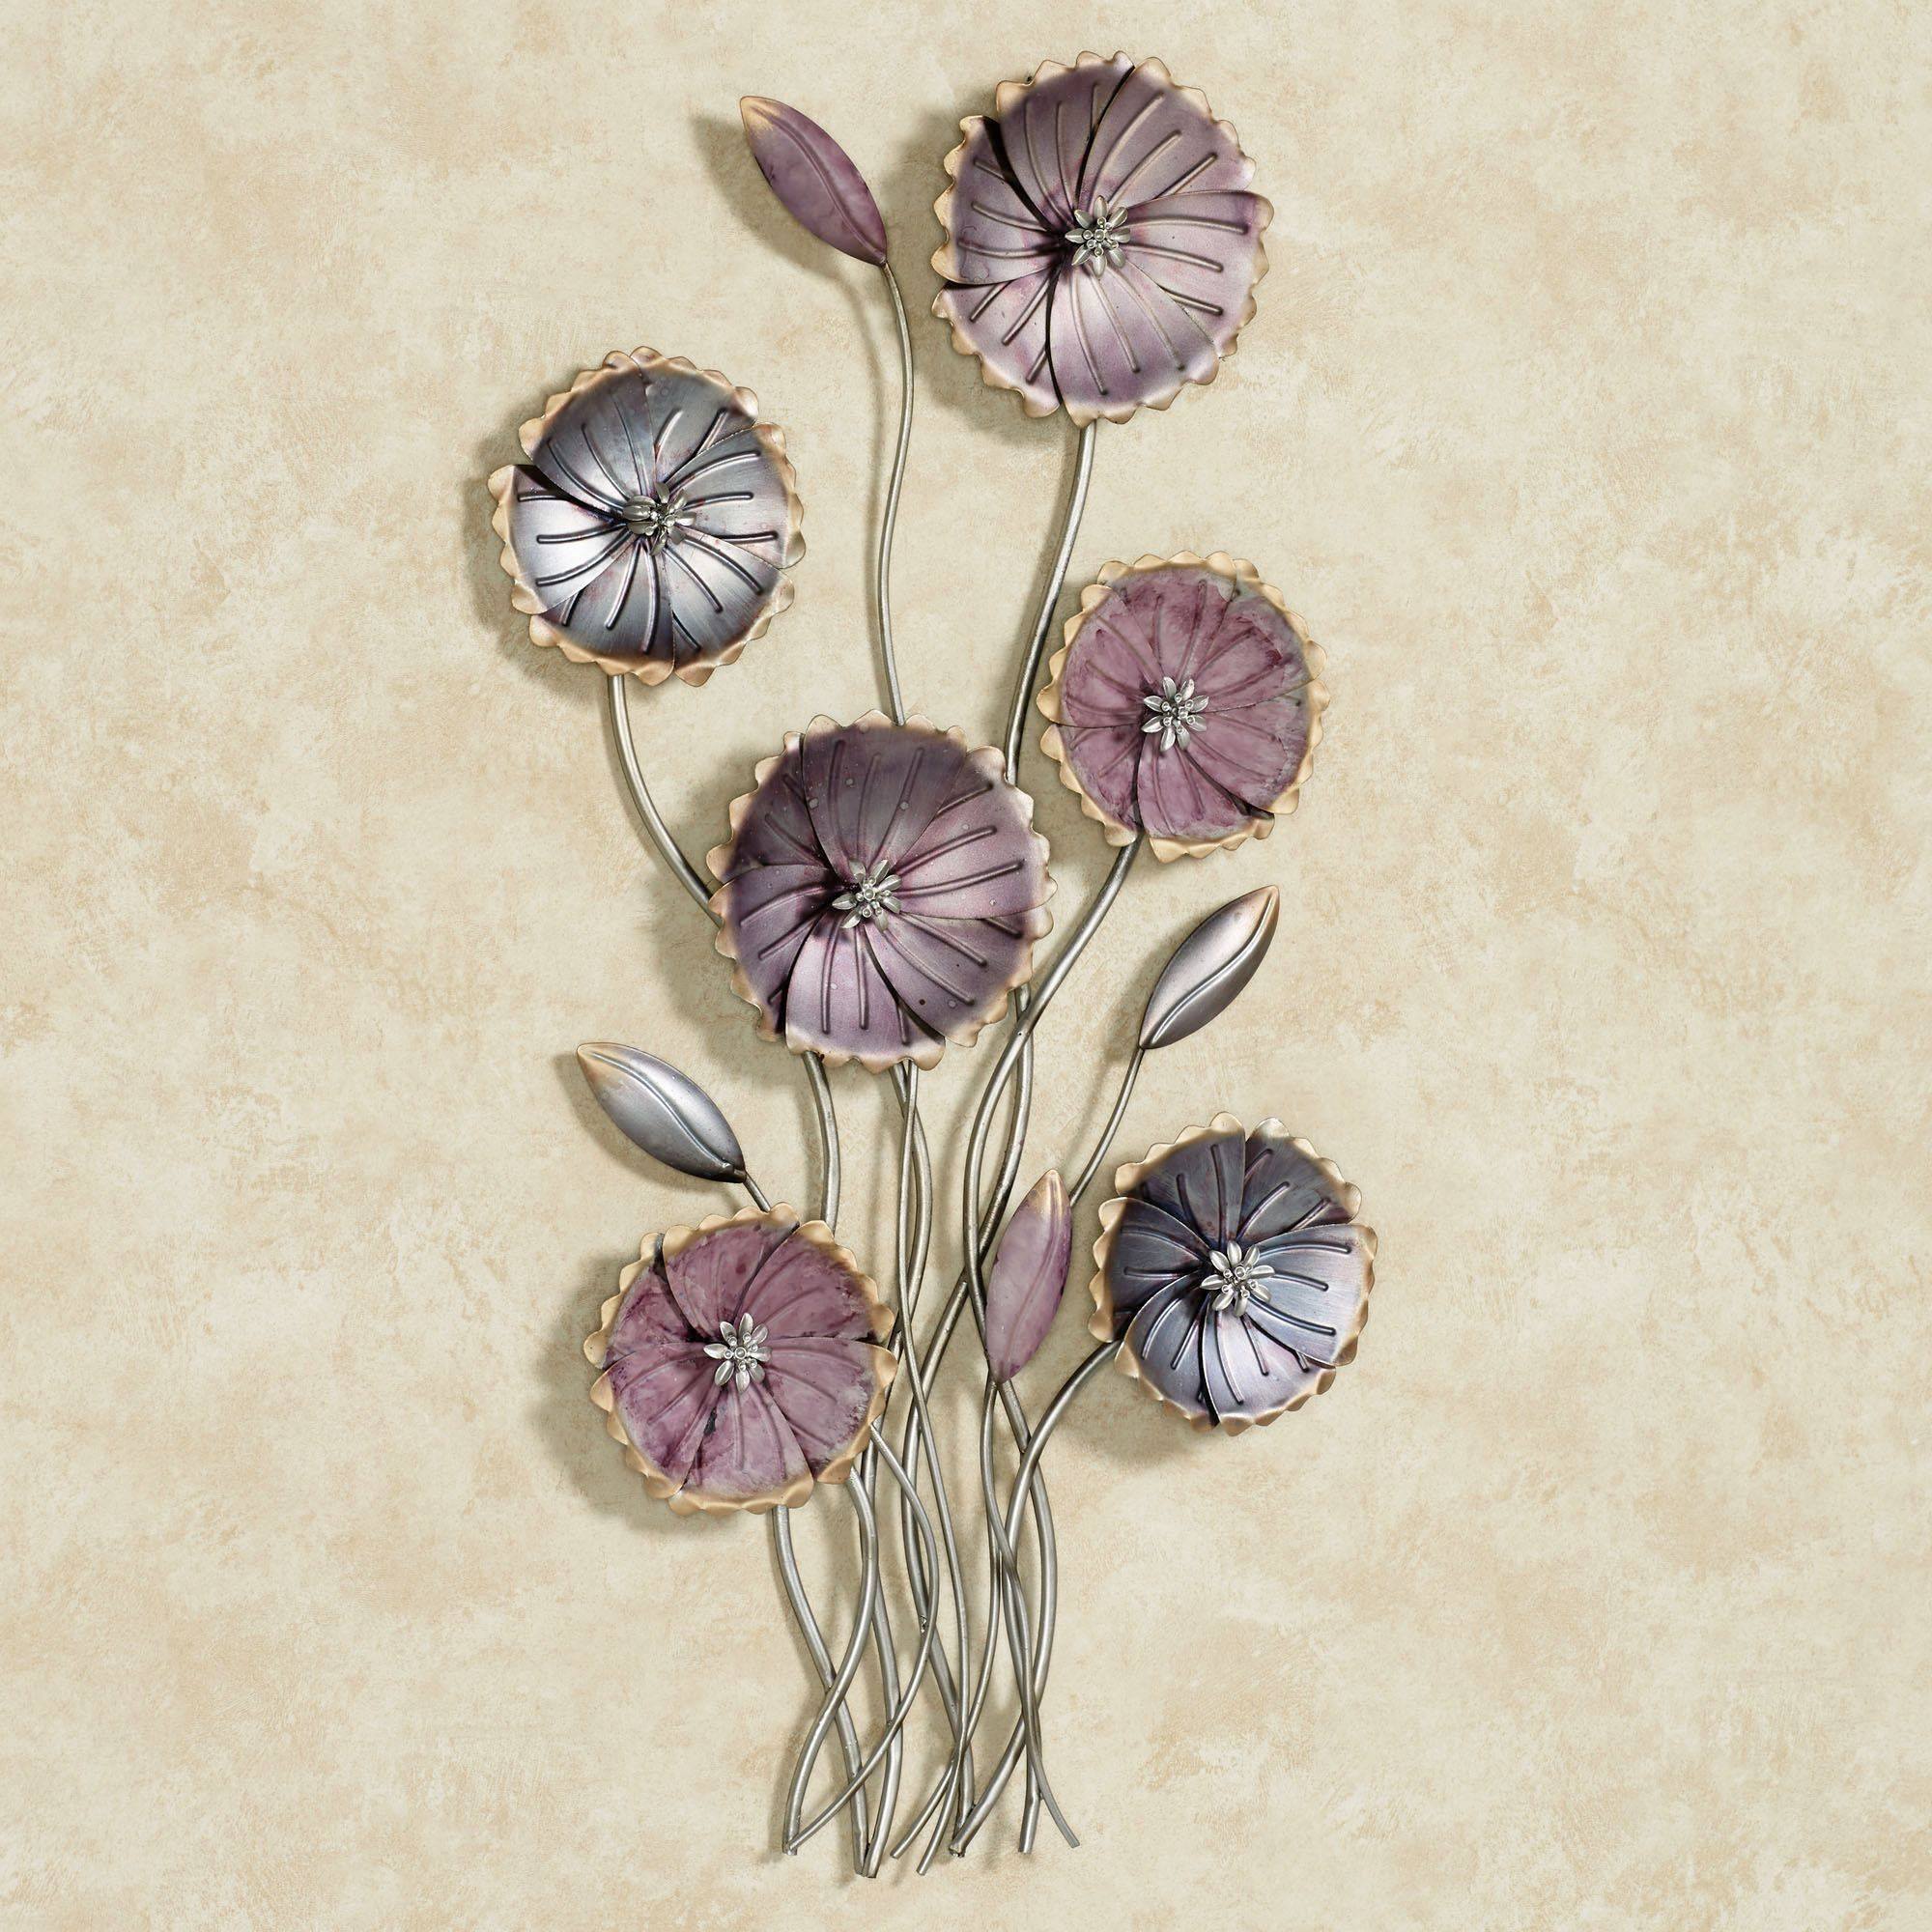 41 Silver Metal Wall Art Flowers, Home Metal Wall Art Wall Decor With Best And Newest Flower Metal Wall Art (View 7 of 20)